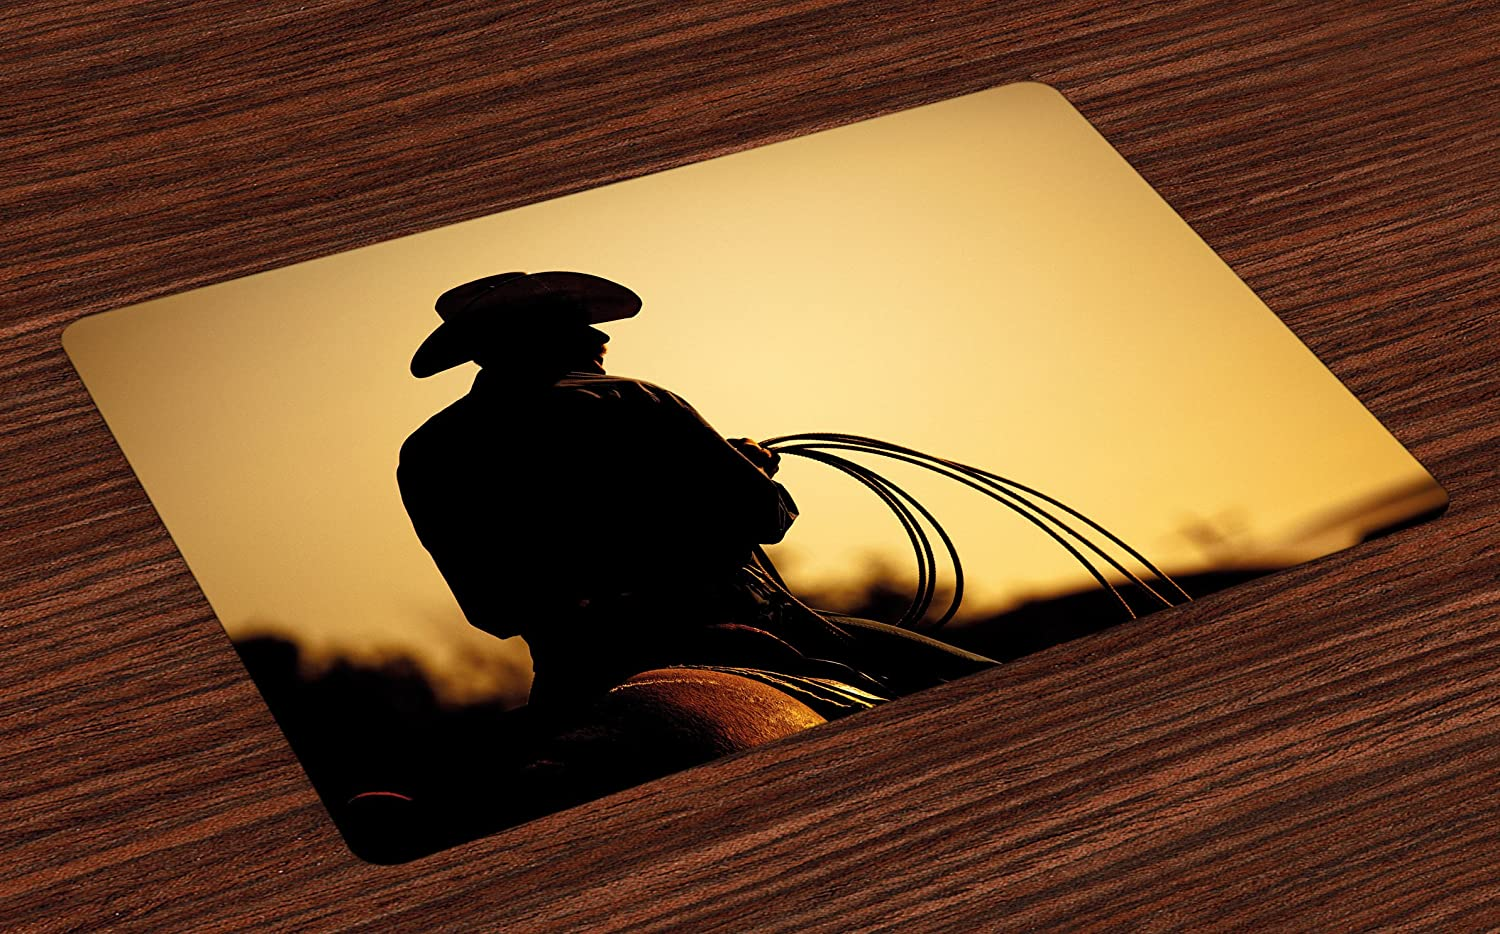 Lunarable Western Place Mats Set of 4, Cowboy with Lasso Silhouette at Small Town Rodeo Theme American USA Culture, Washable Fabric Placemats for Dining Room Kitchen Table Decoration, Brown Pale Brown